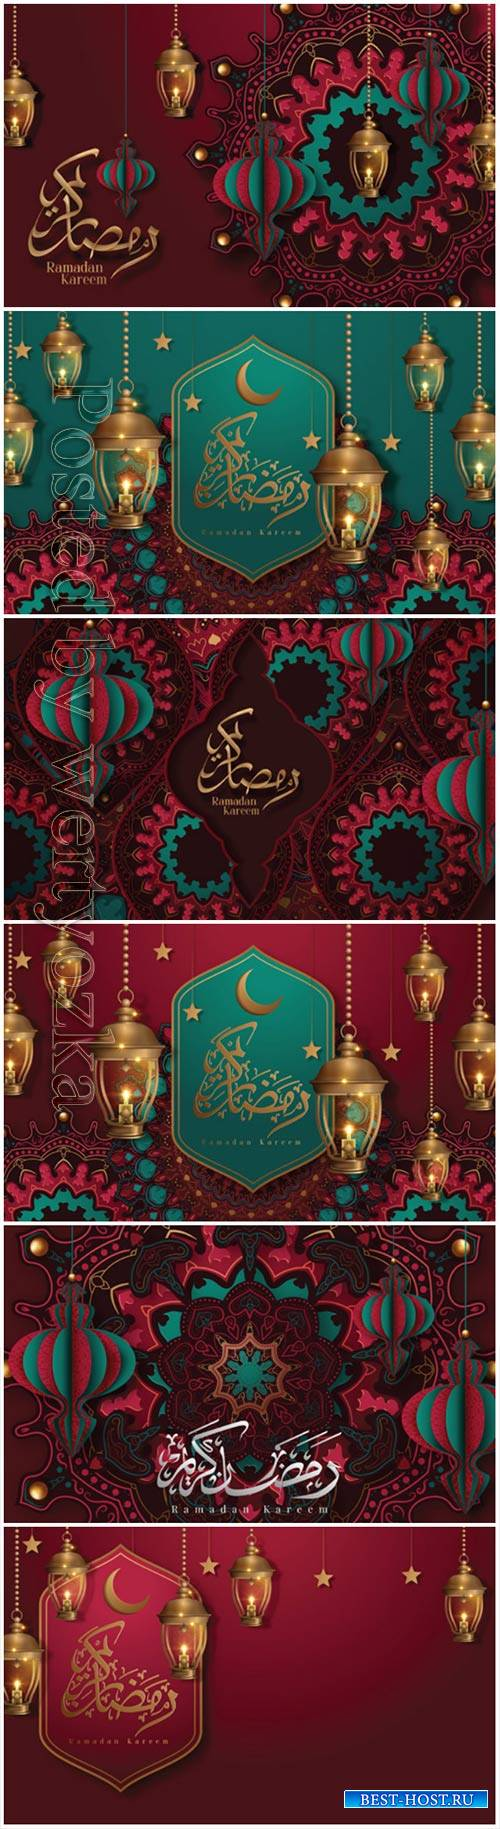 Ramadan kareem calligraphy card with arabesque flowers and